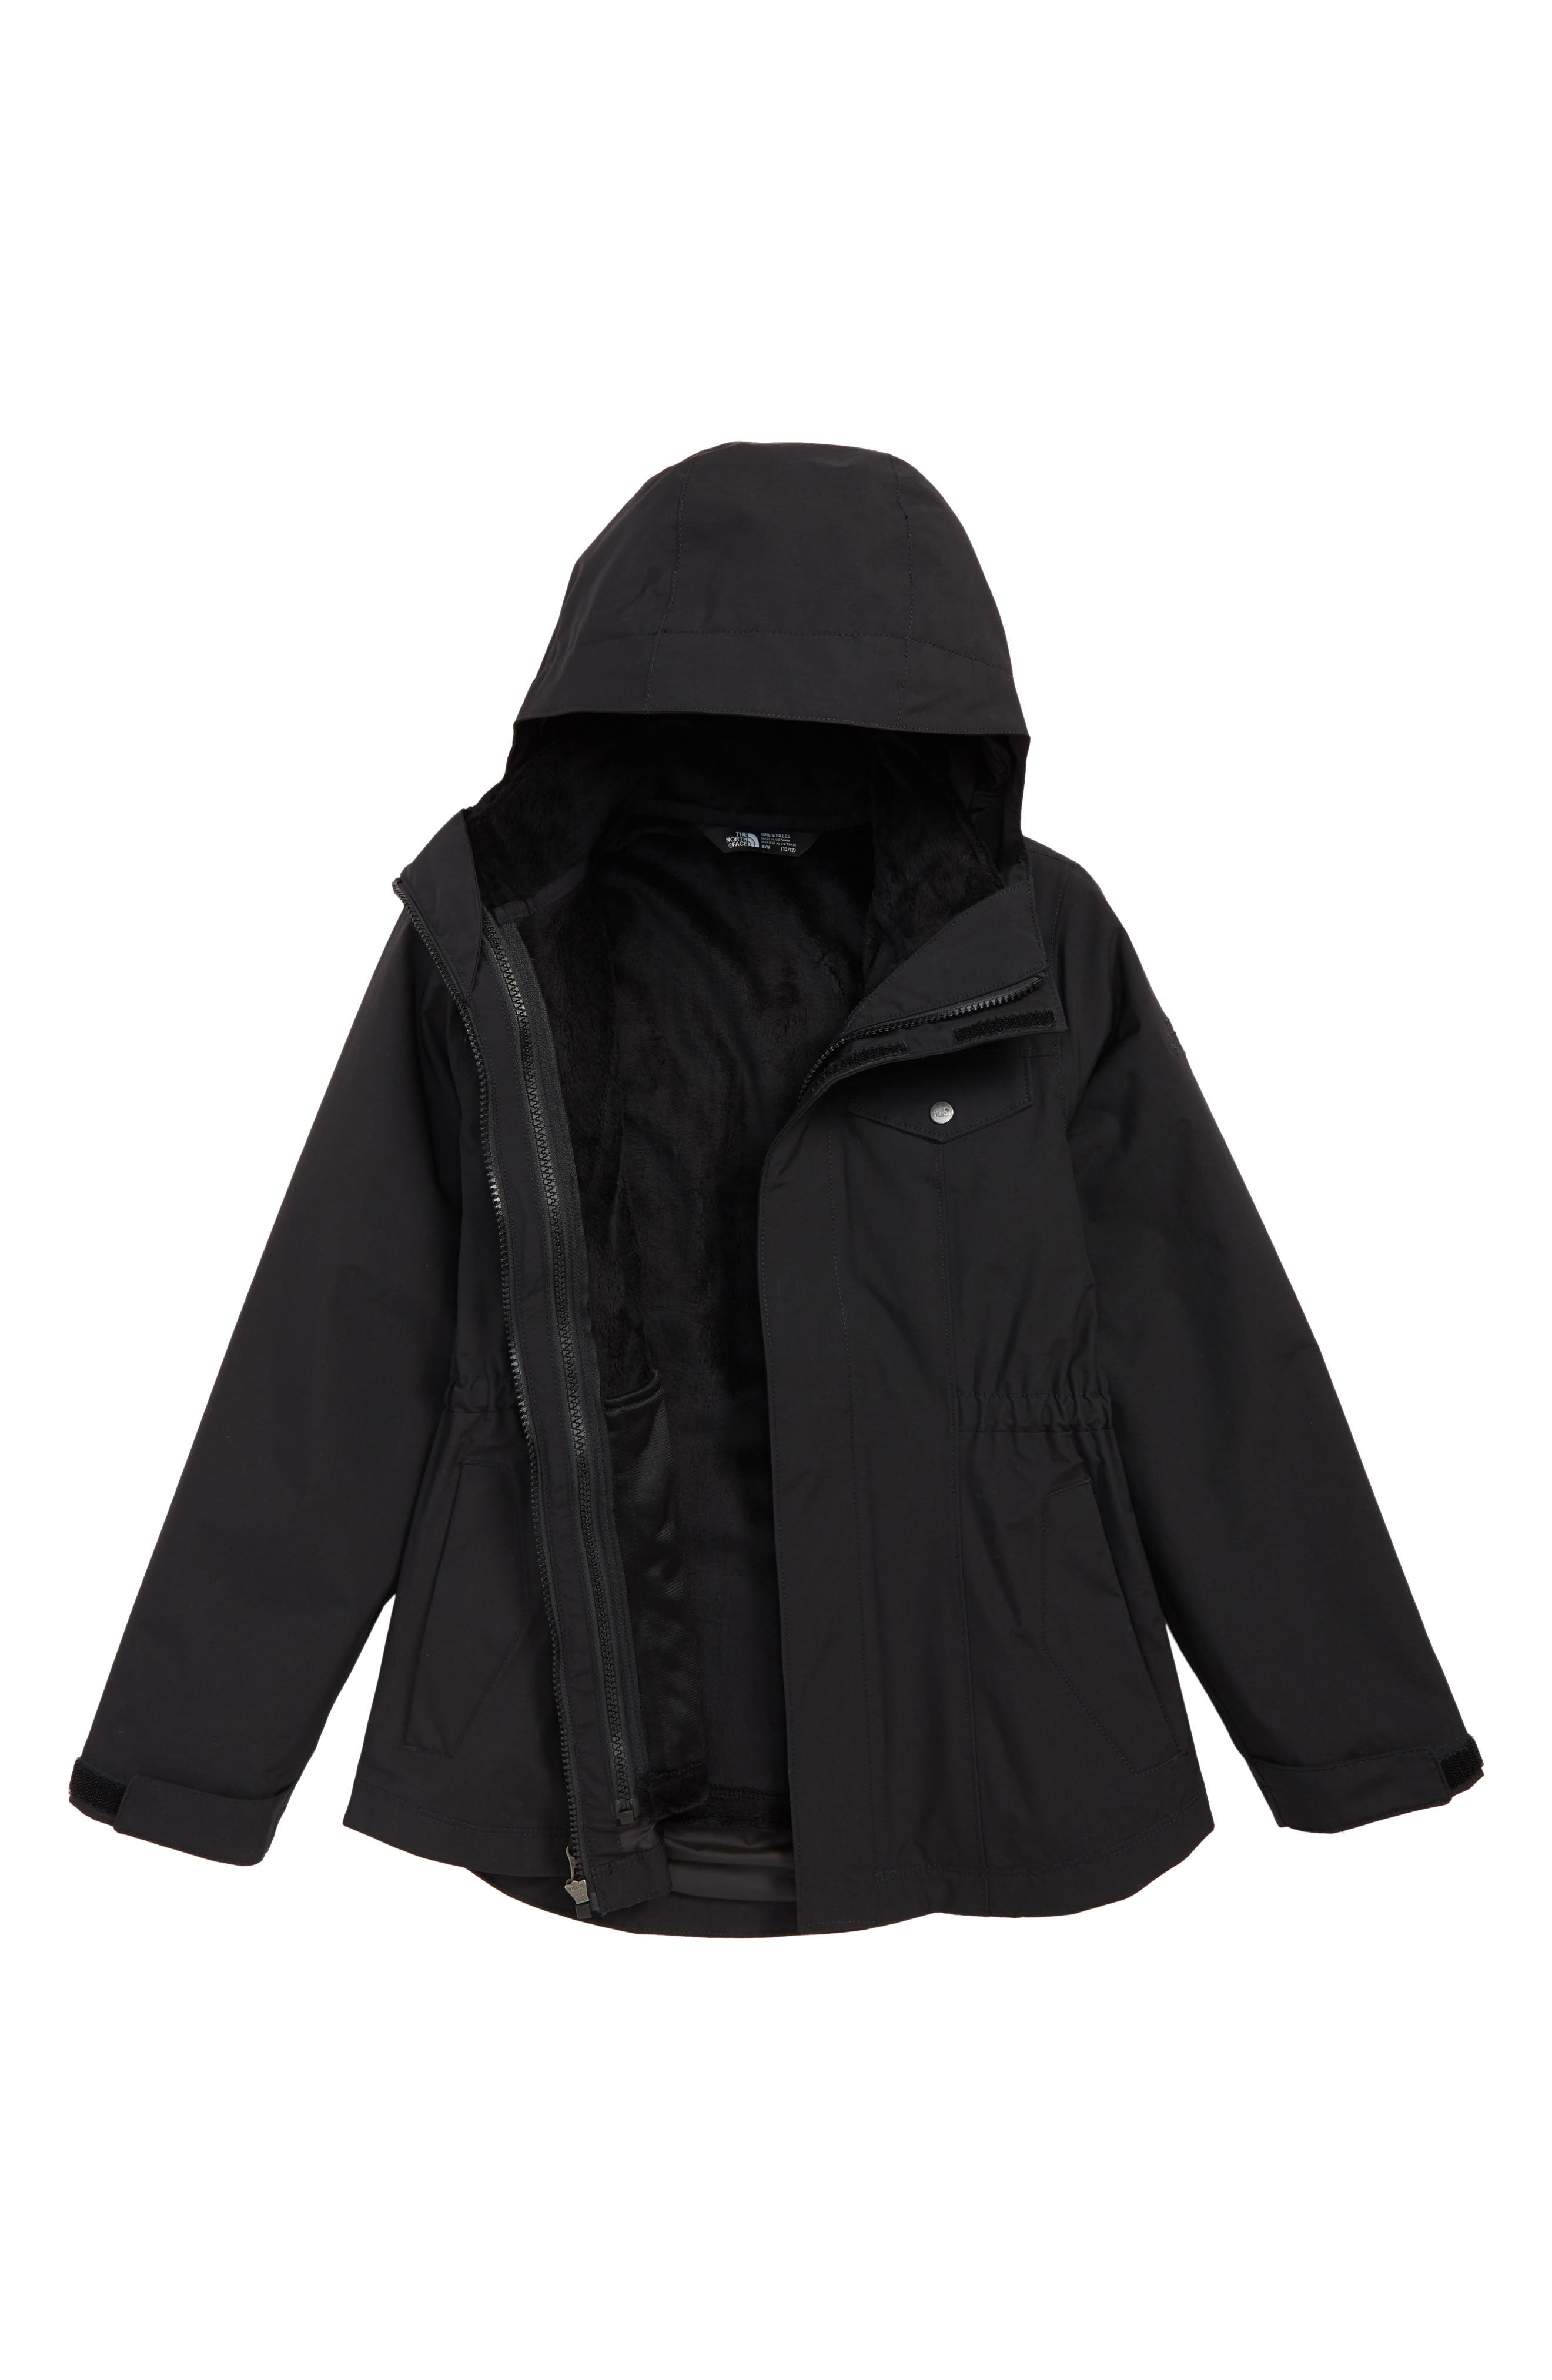 THE NORTH FACE, Osolita 2.0 TriClimate<sup>®</sup> Waterproof 3-in-1 Jacket, Main thumbnail 1, color, 001